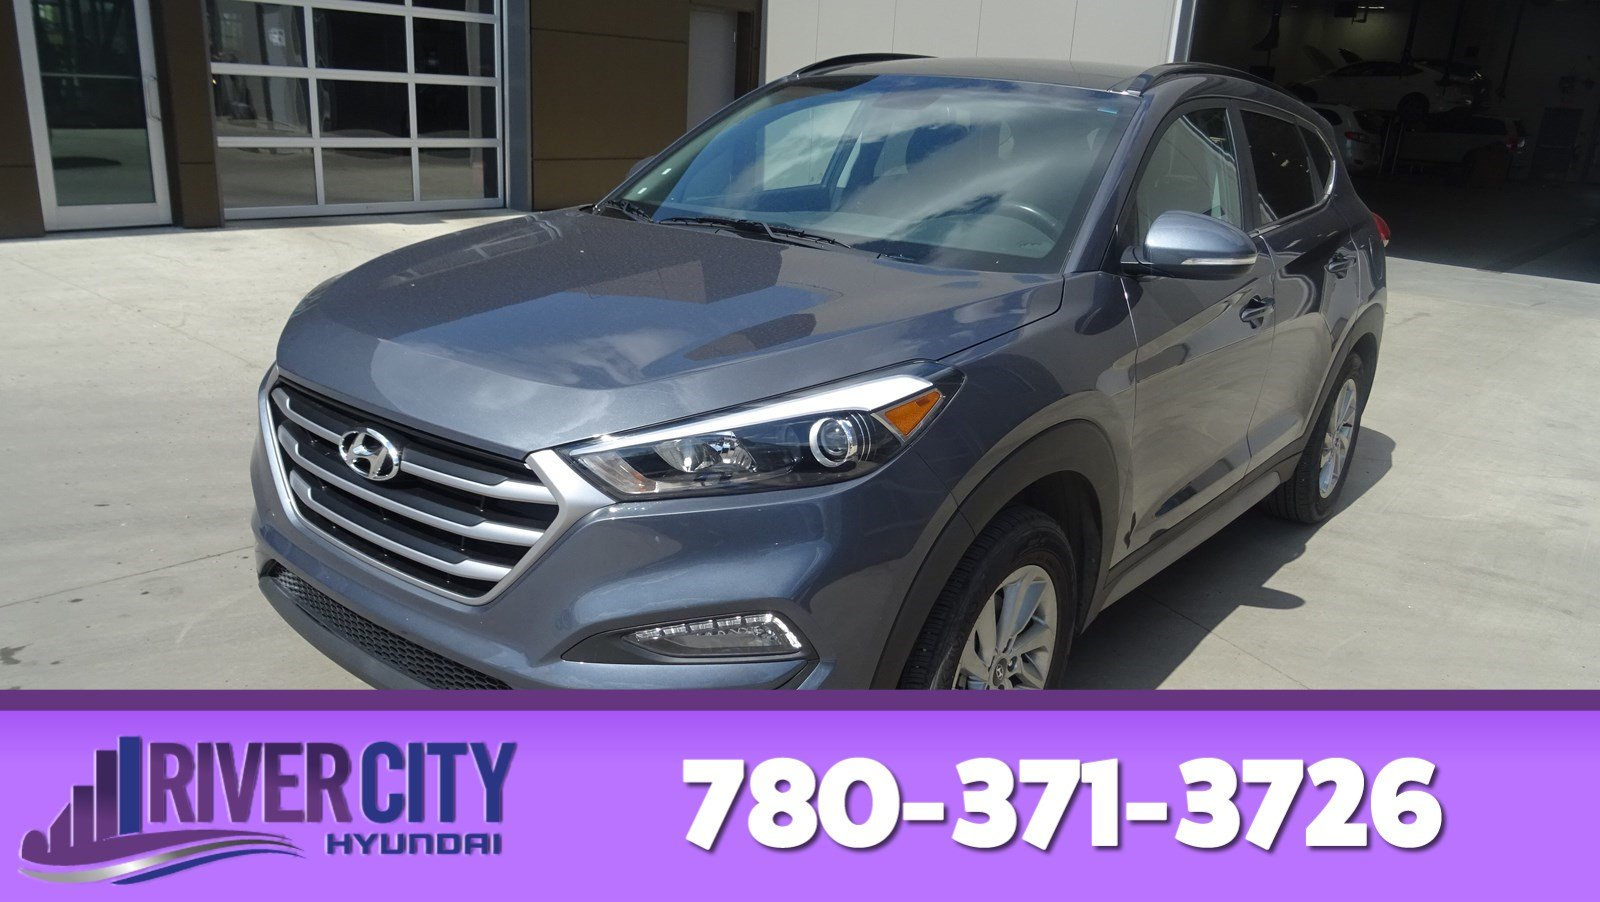 Certified Pre-Owned 2017 Hyundai Tucson AWD LUXURY Navigation (GPS), Leather, Heated Seats, Back-up Cam, Bluetooth, A/C,